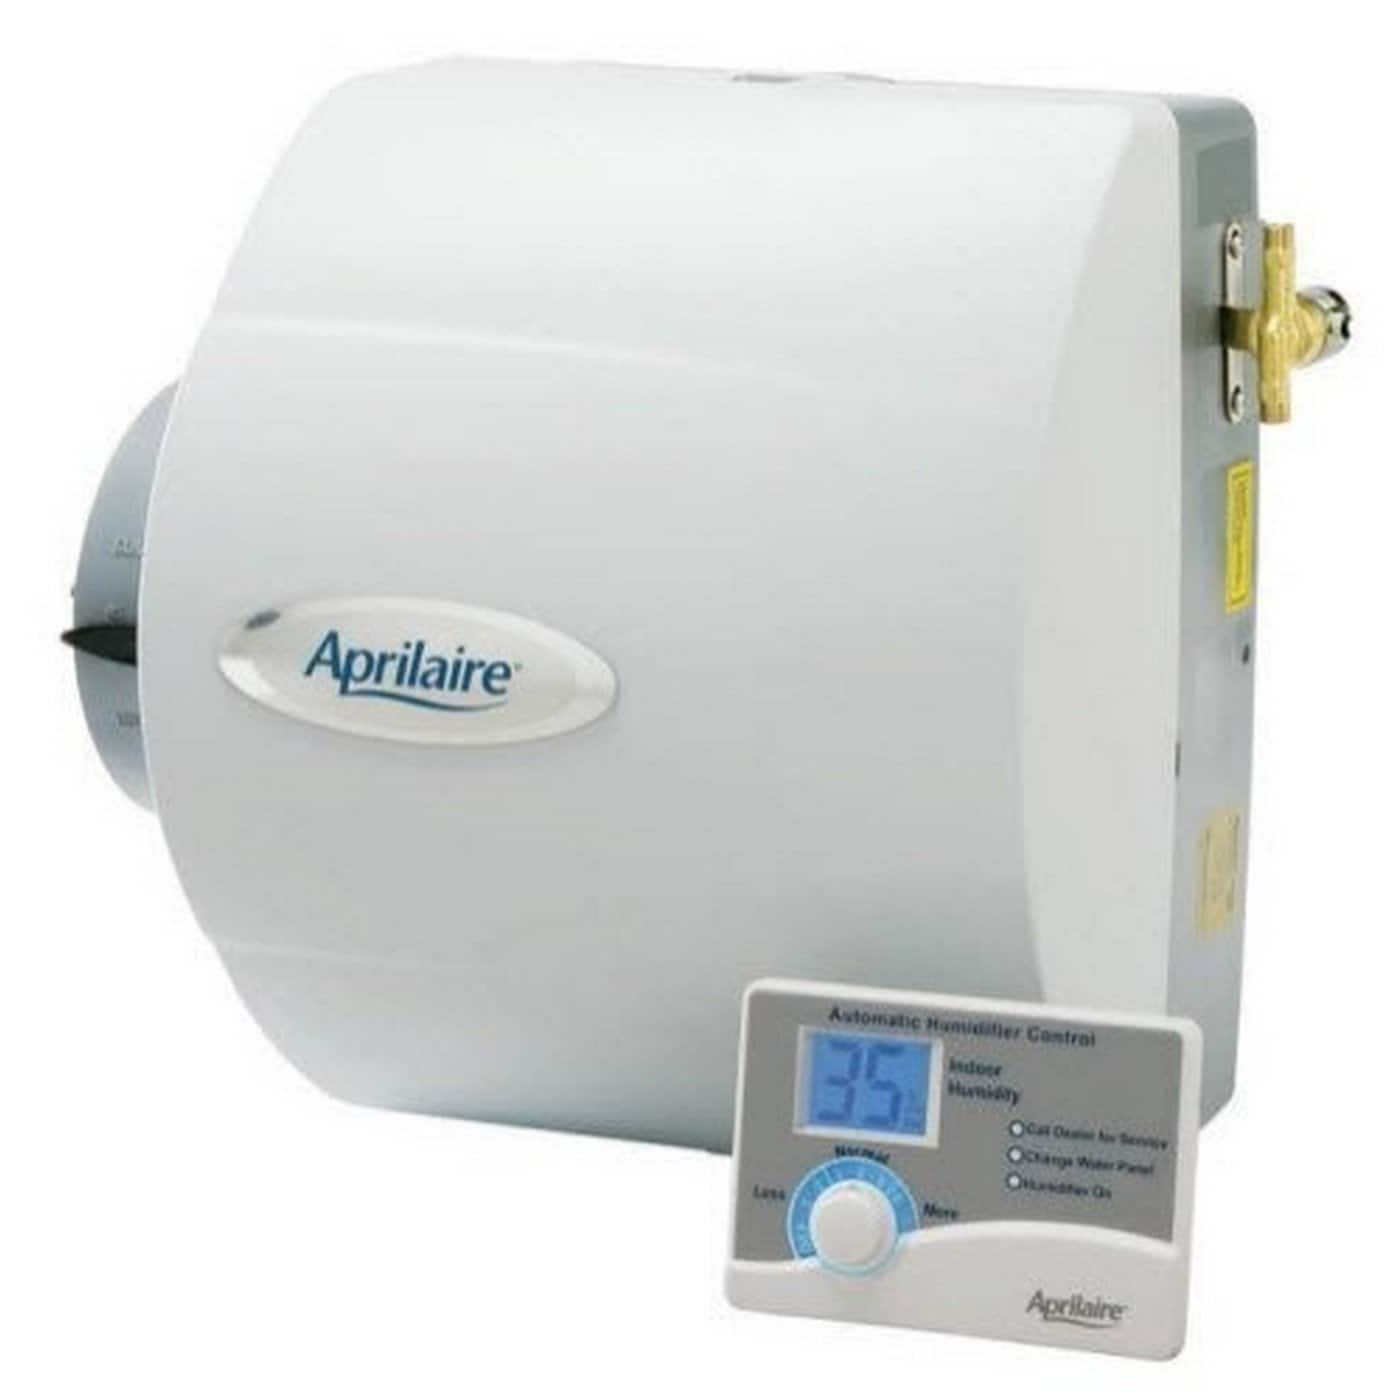 Aprilaire 500 Whole House Humidifier with Digital Control $125.79 + Free Shipping